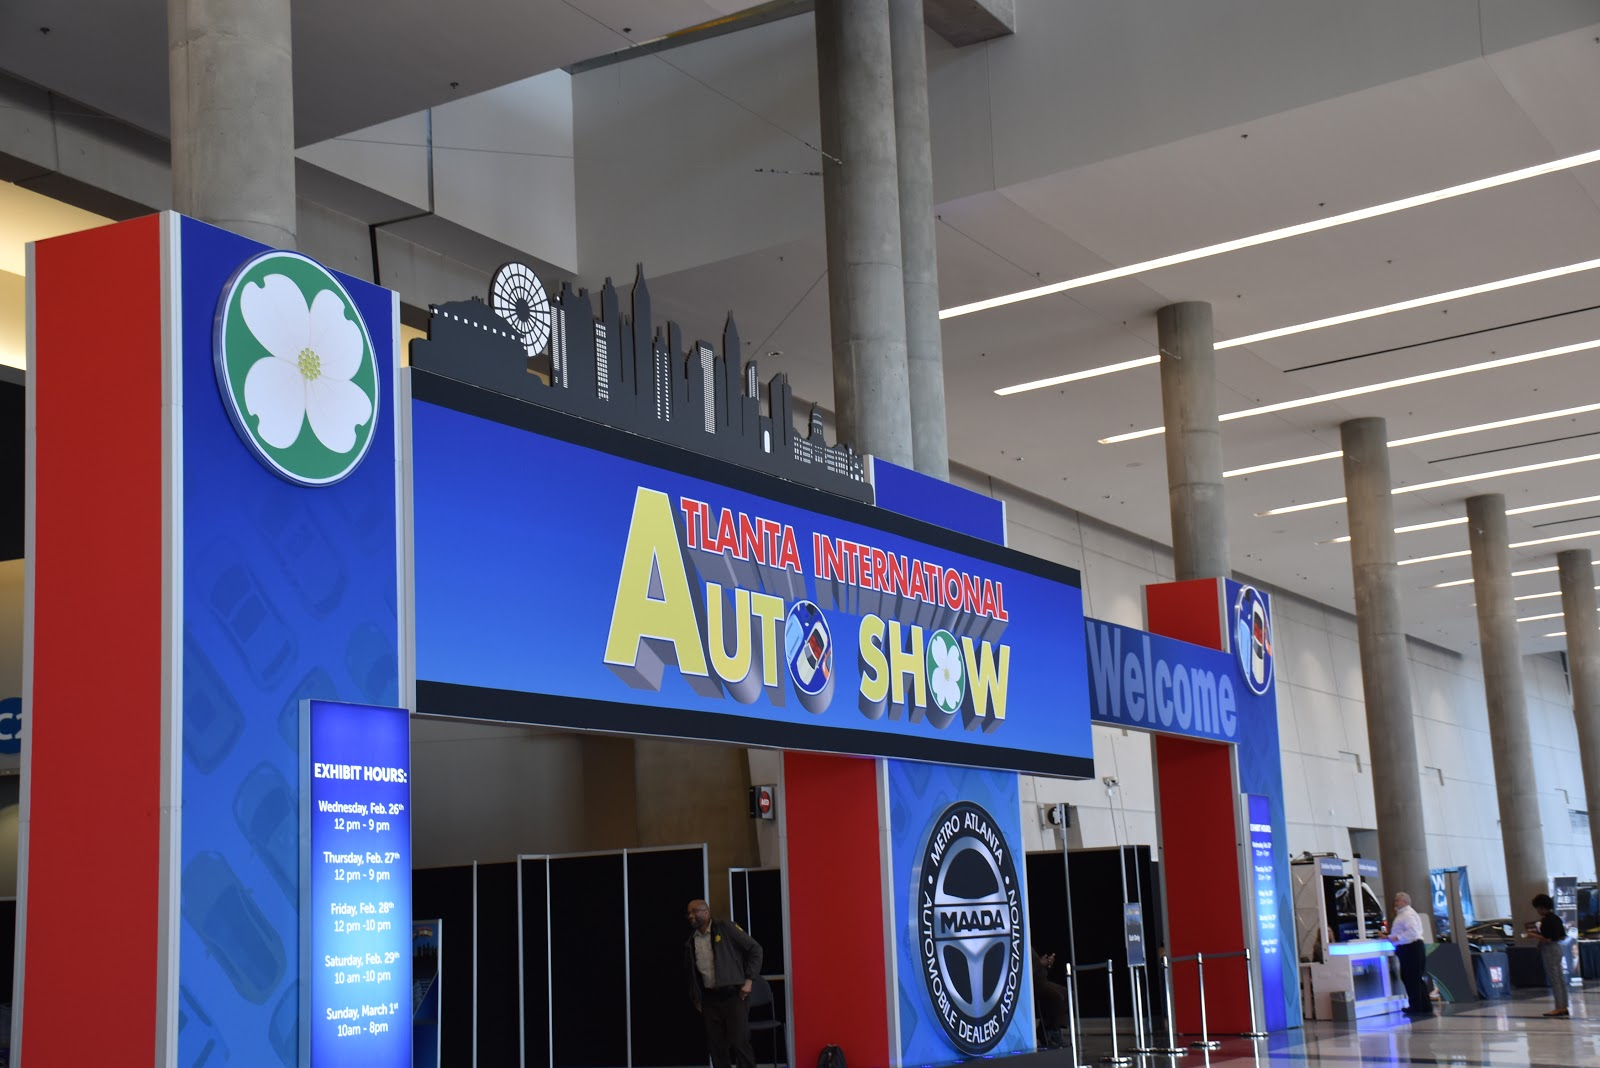 Check Out My Favorite Rides Presented at Atlanta International Auto Show